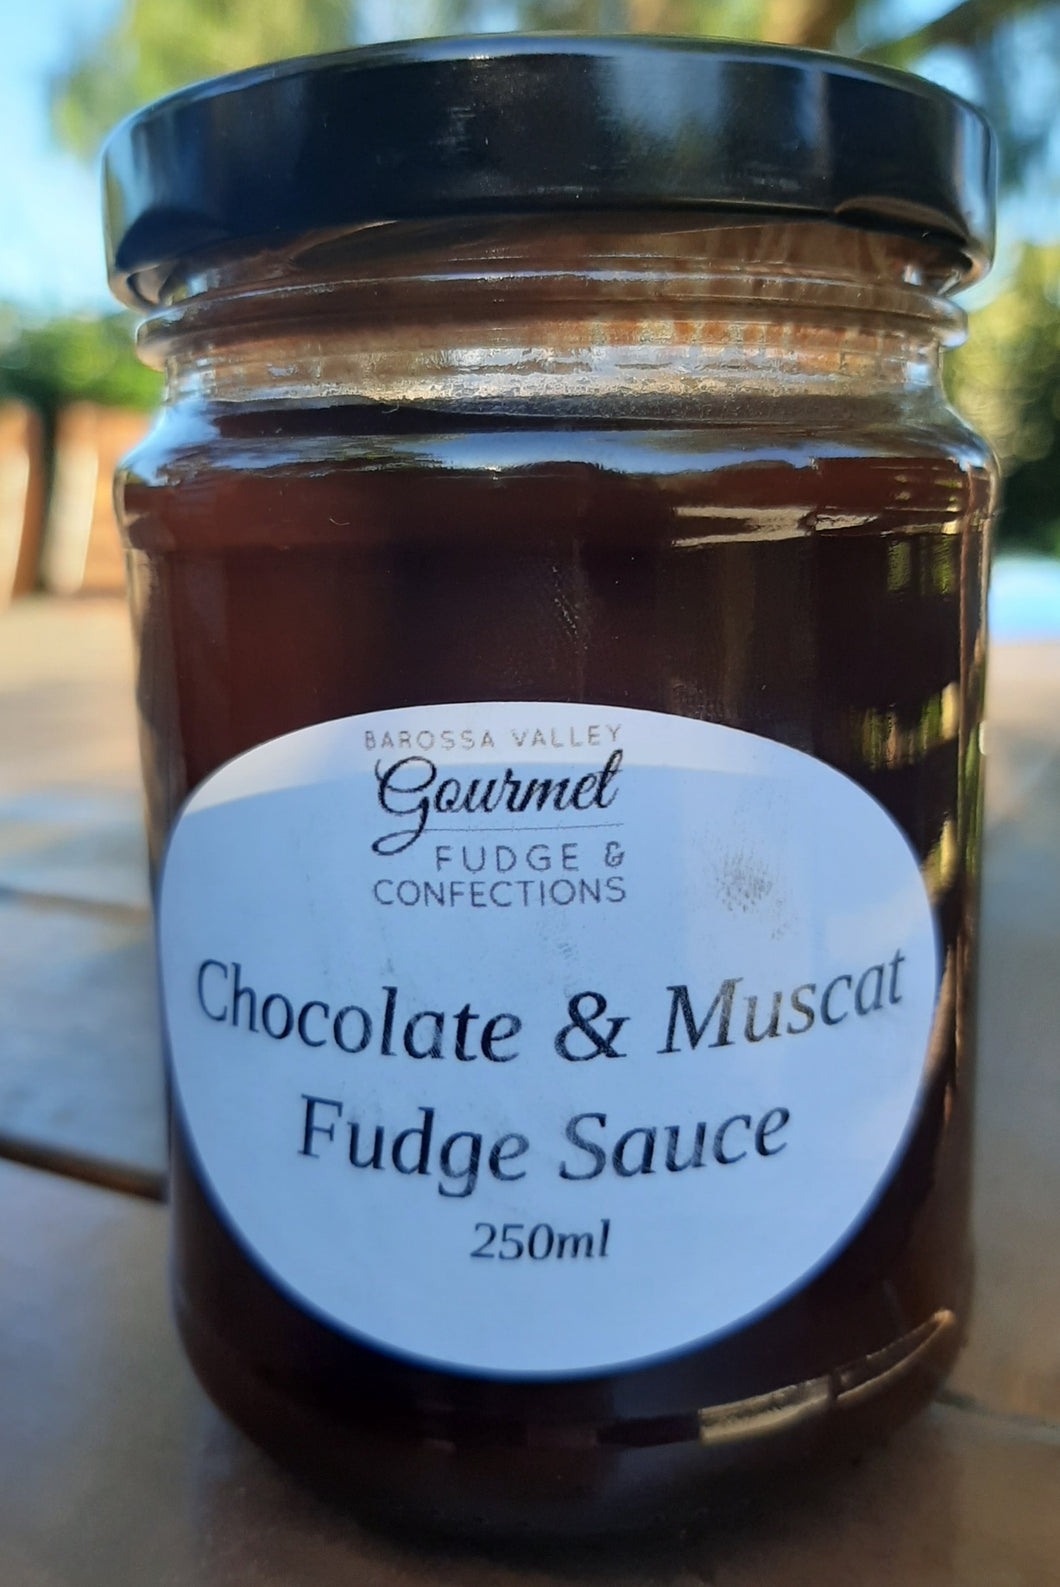 Chocolate and Muscat Fudge Sauce